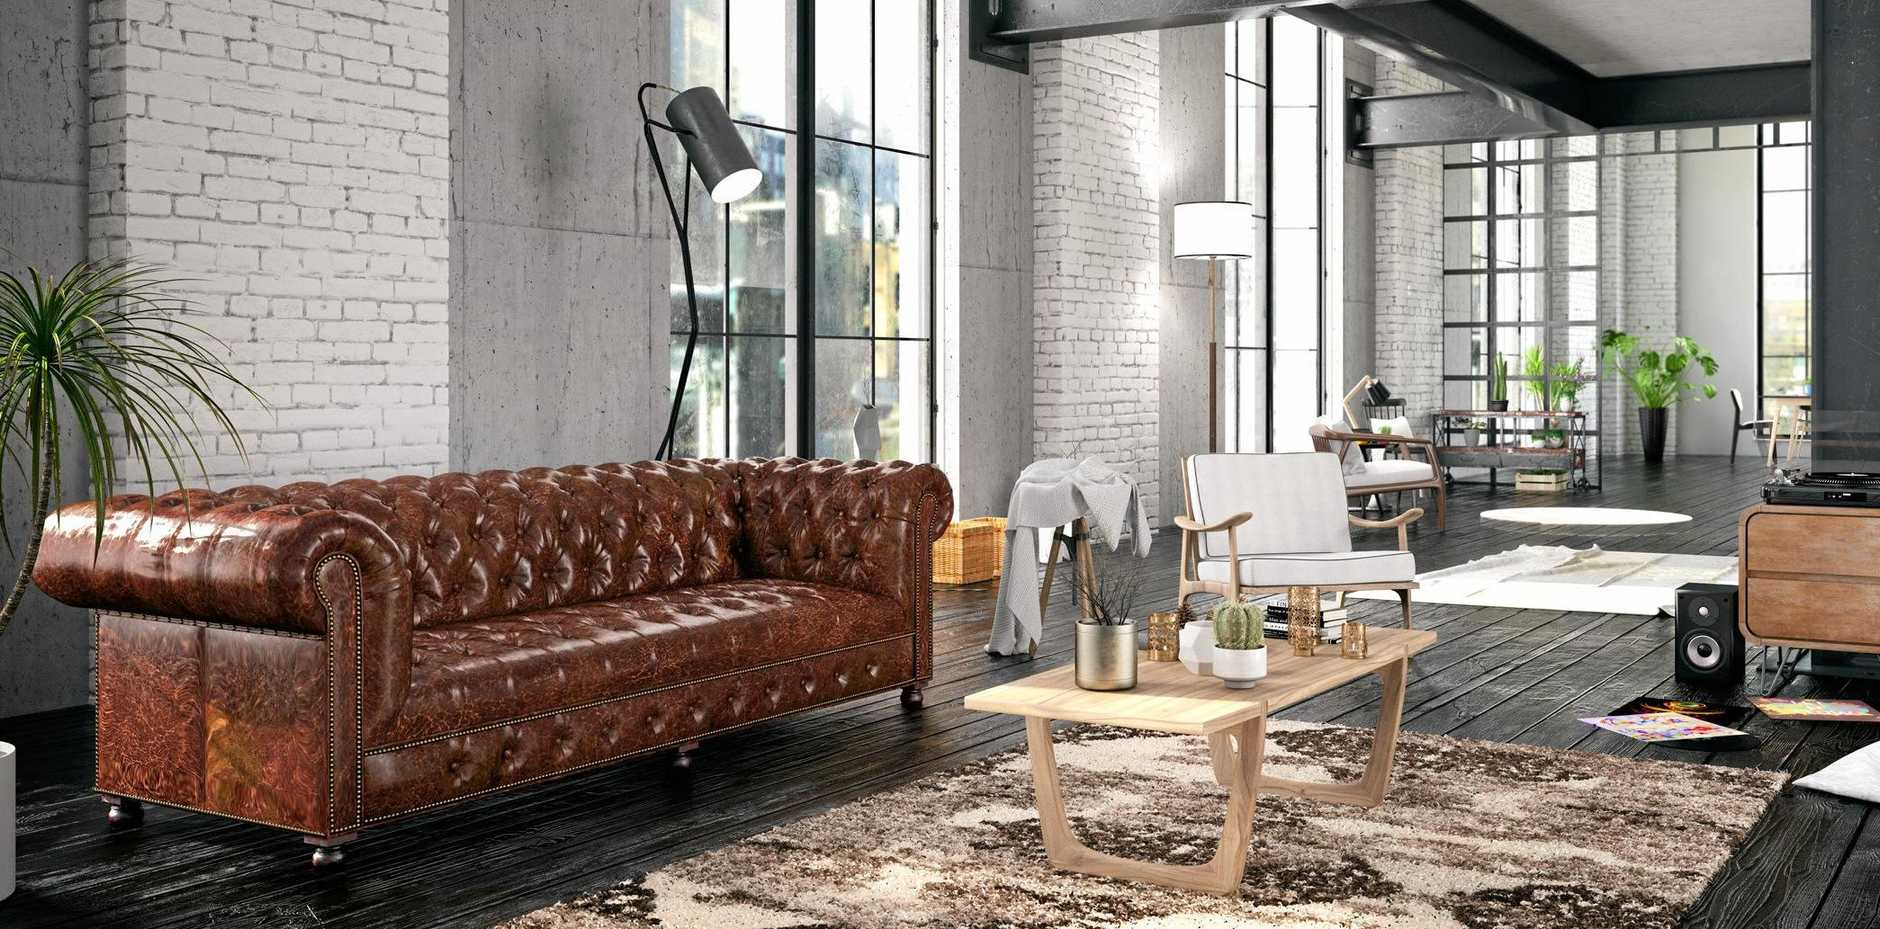 Many furniture designers now produce a variety of versions of the classic chesterfield.